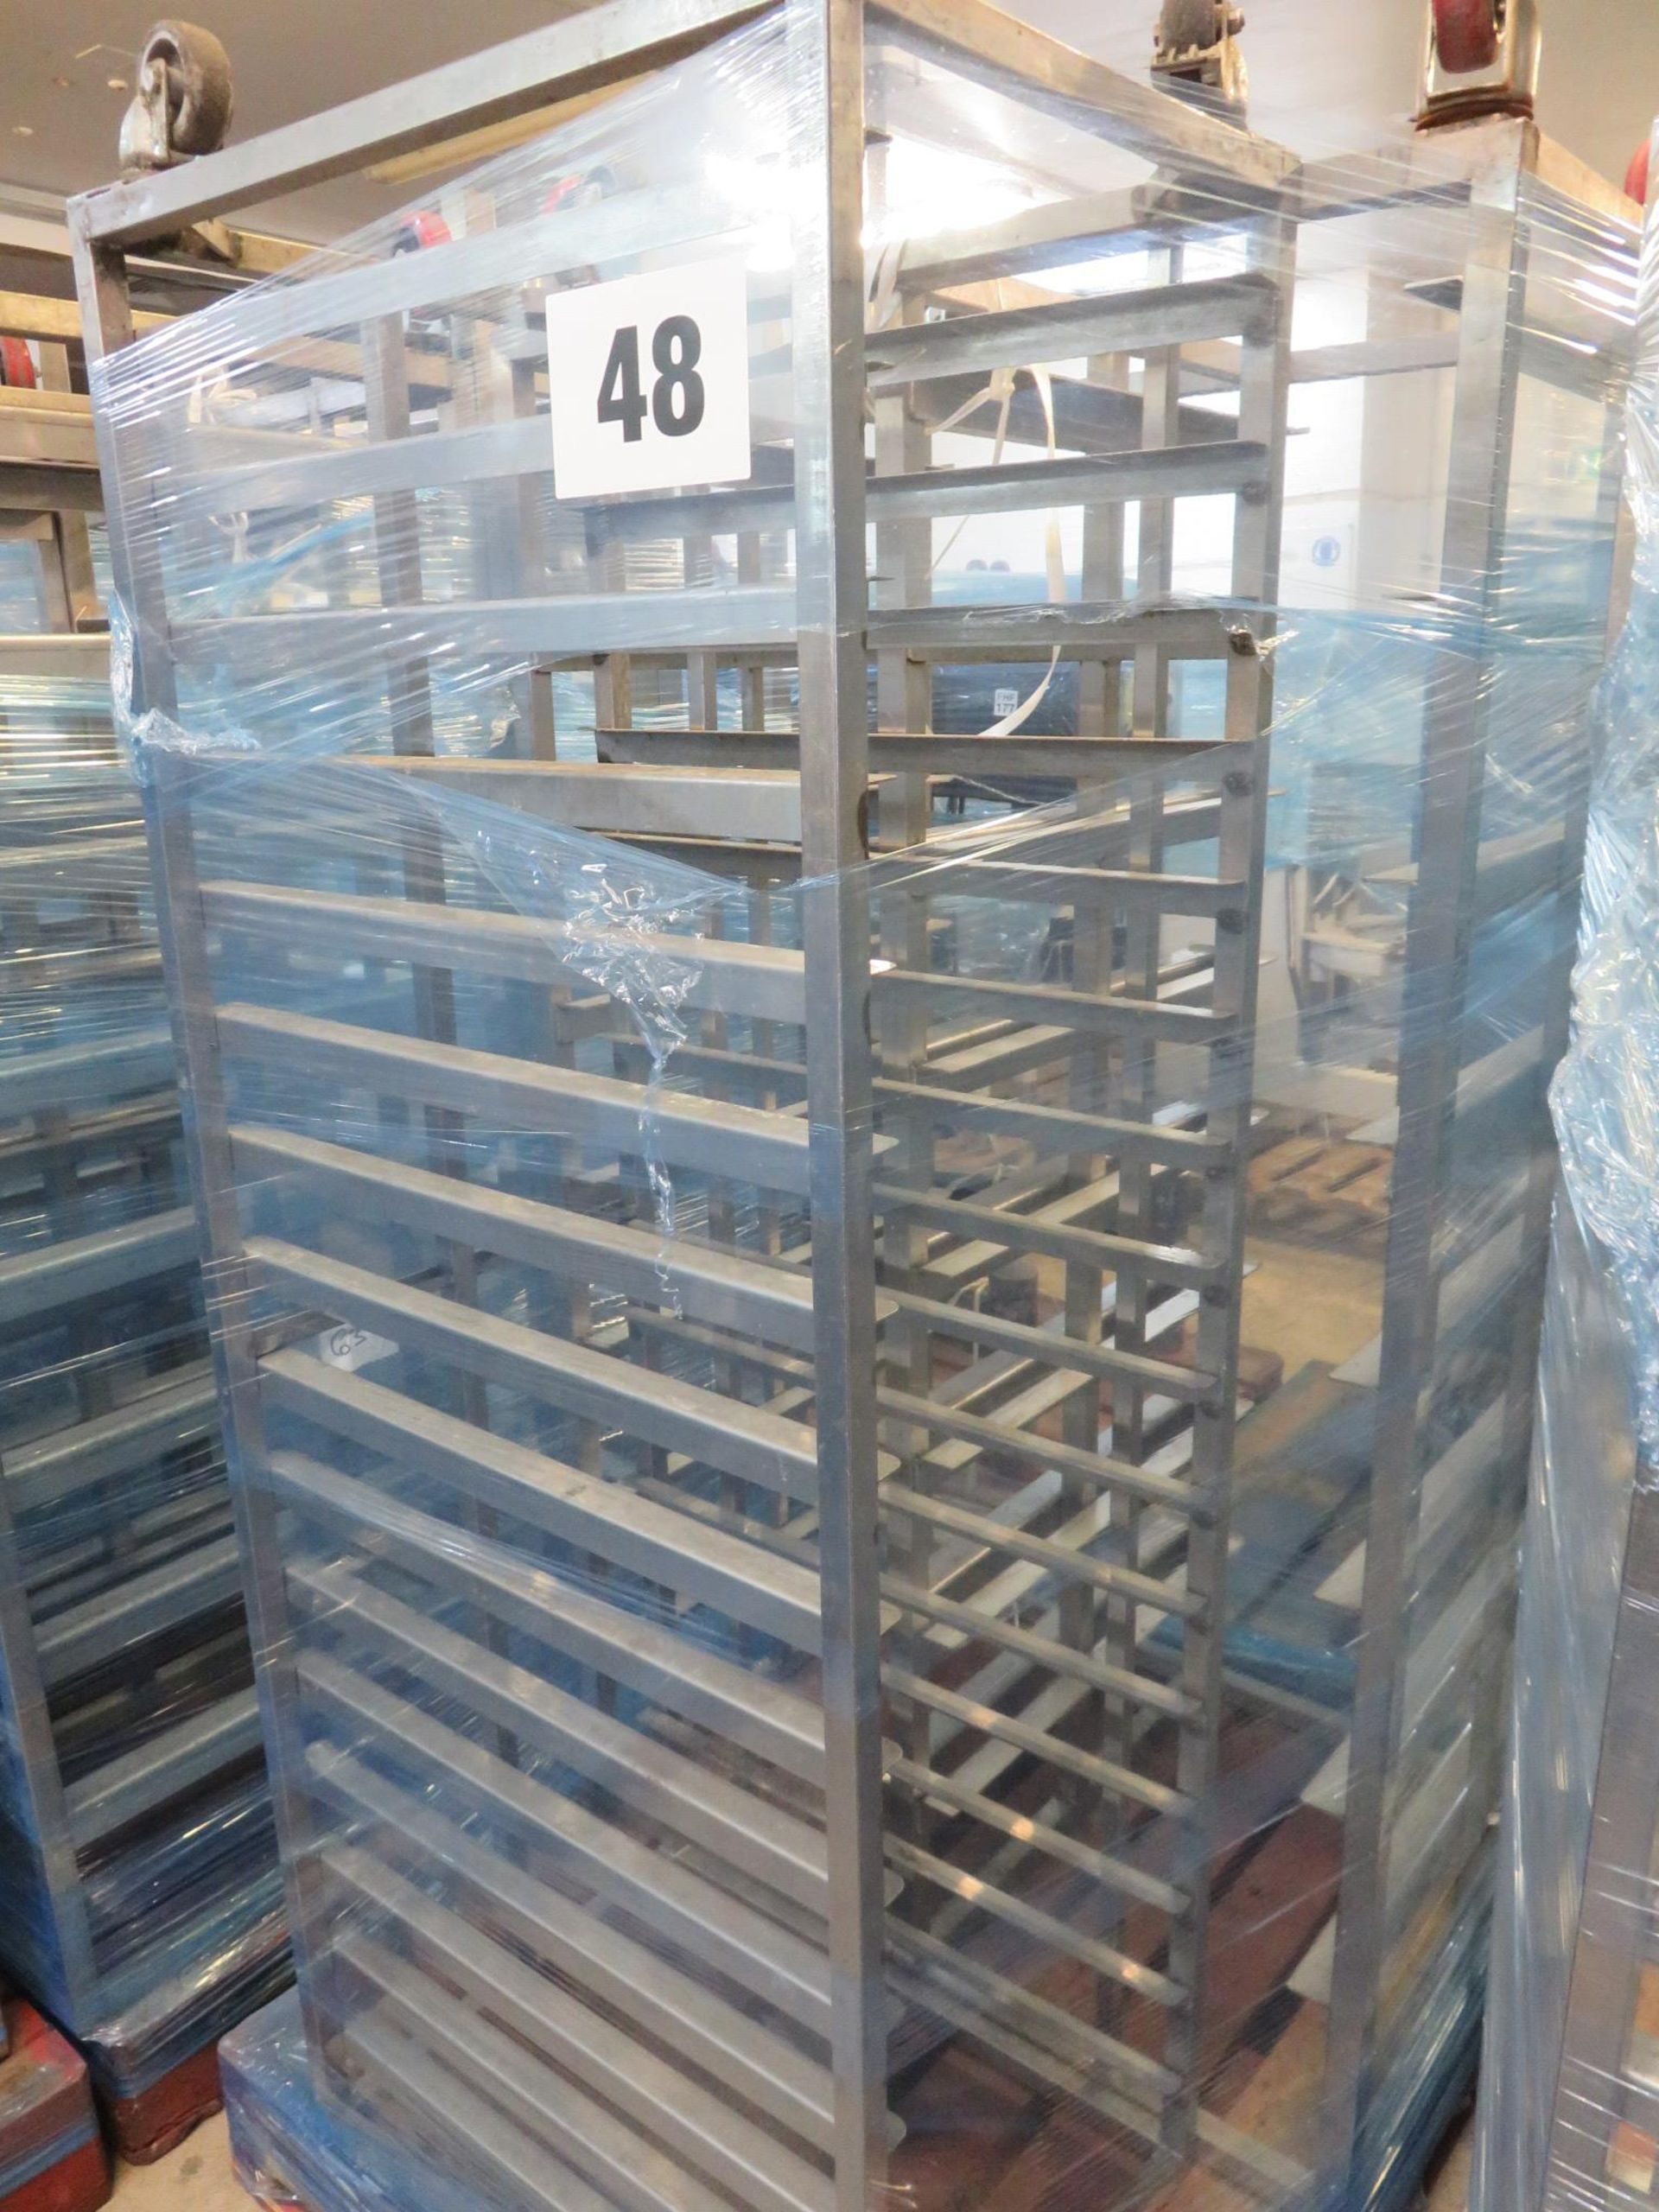 Lot 48 - 3 x S/s Racks: - 2 x S/s Racks capable of taking 10trays.Approx.420mm x 660mm x 1.7metres high.LO£20